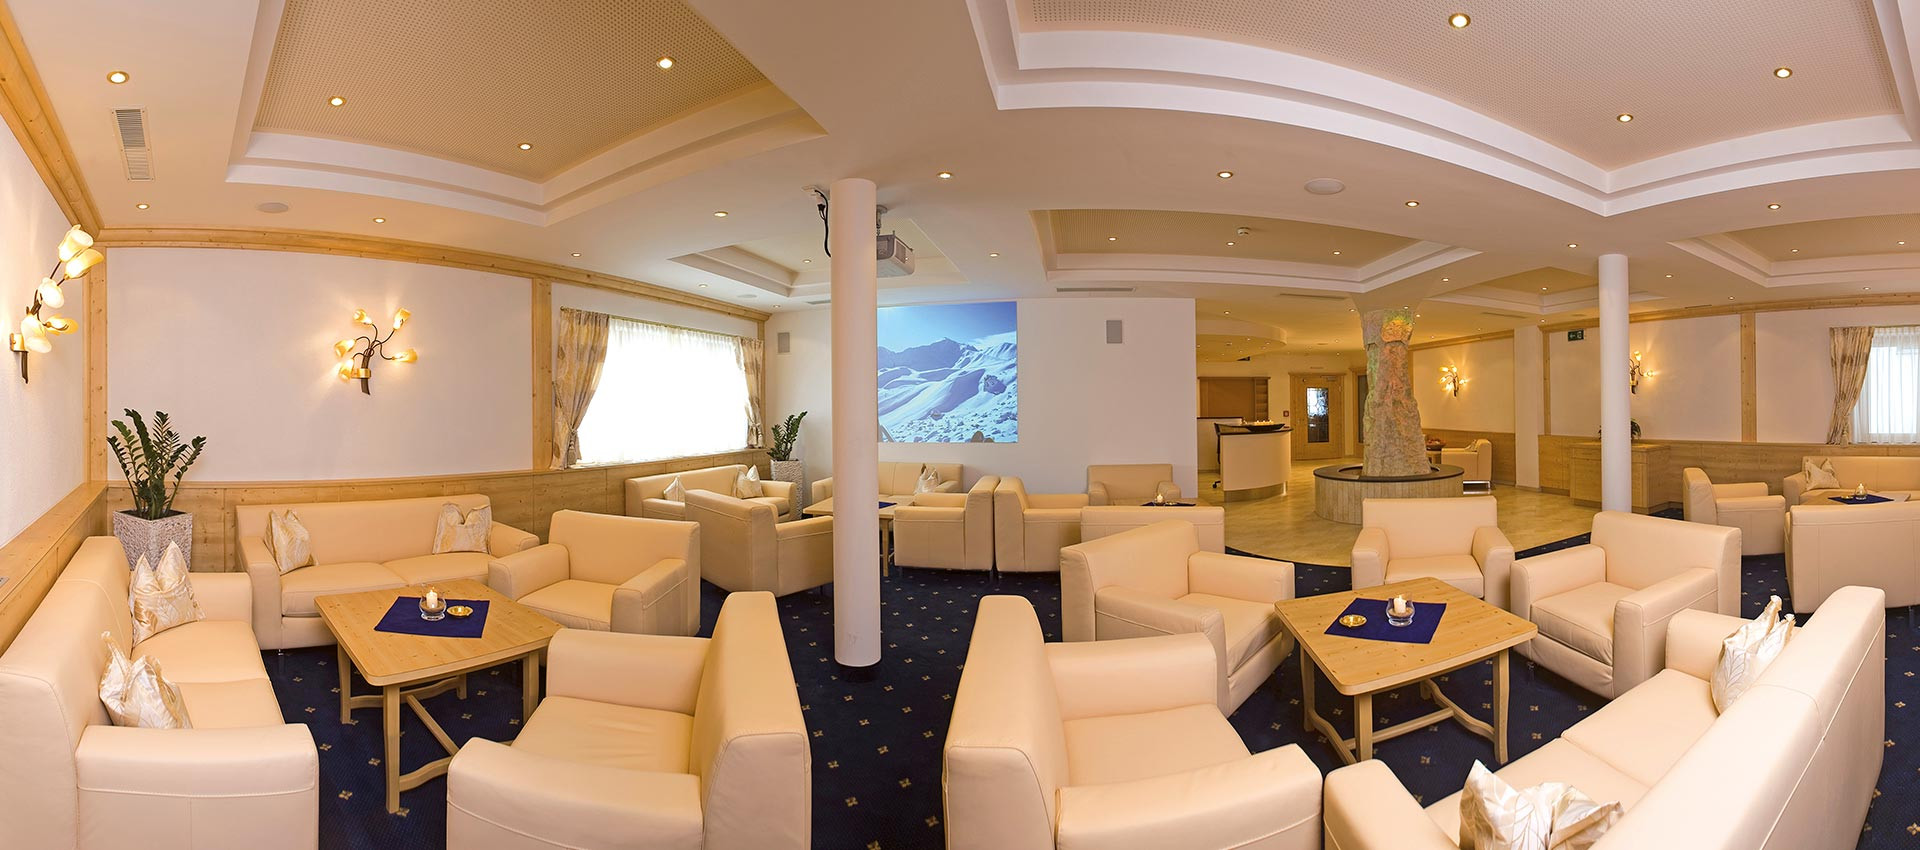 Hotel Antony Ischgl - Reception